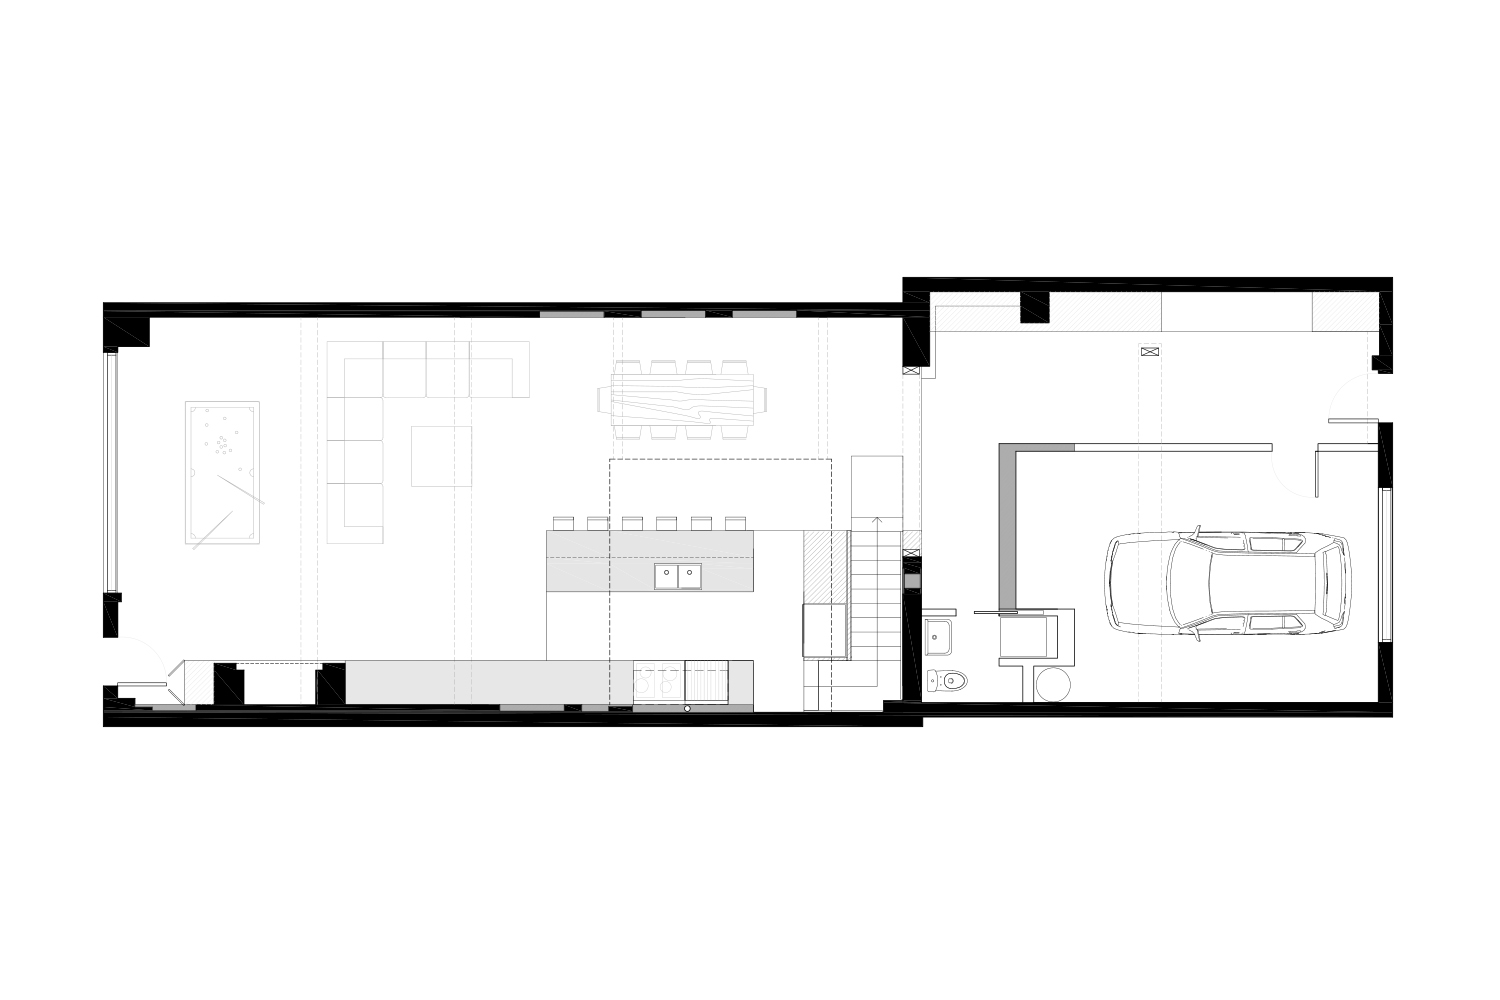 Development plan of the ground floor of a single family home. Black and white plane. Drawings made by interior designers of La Firme